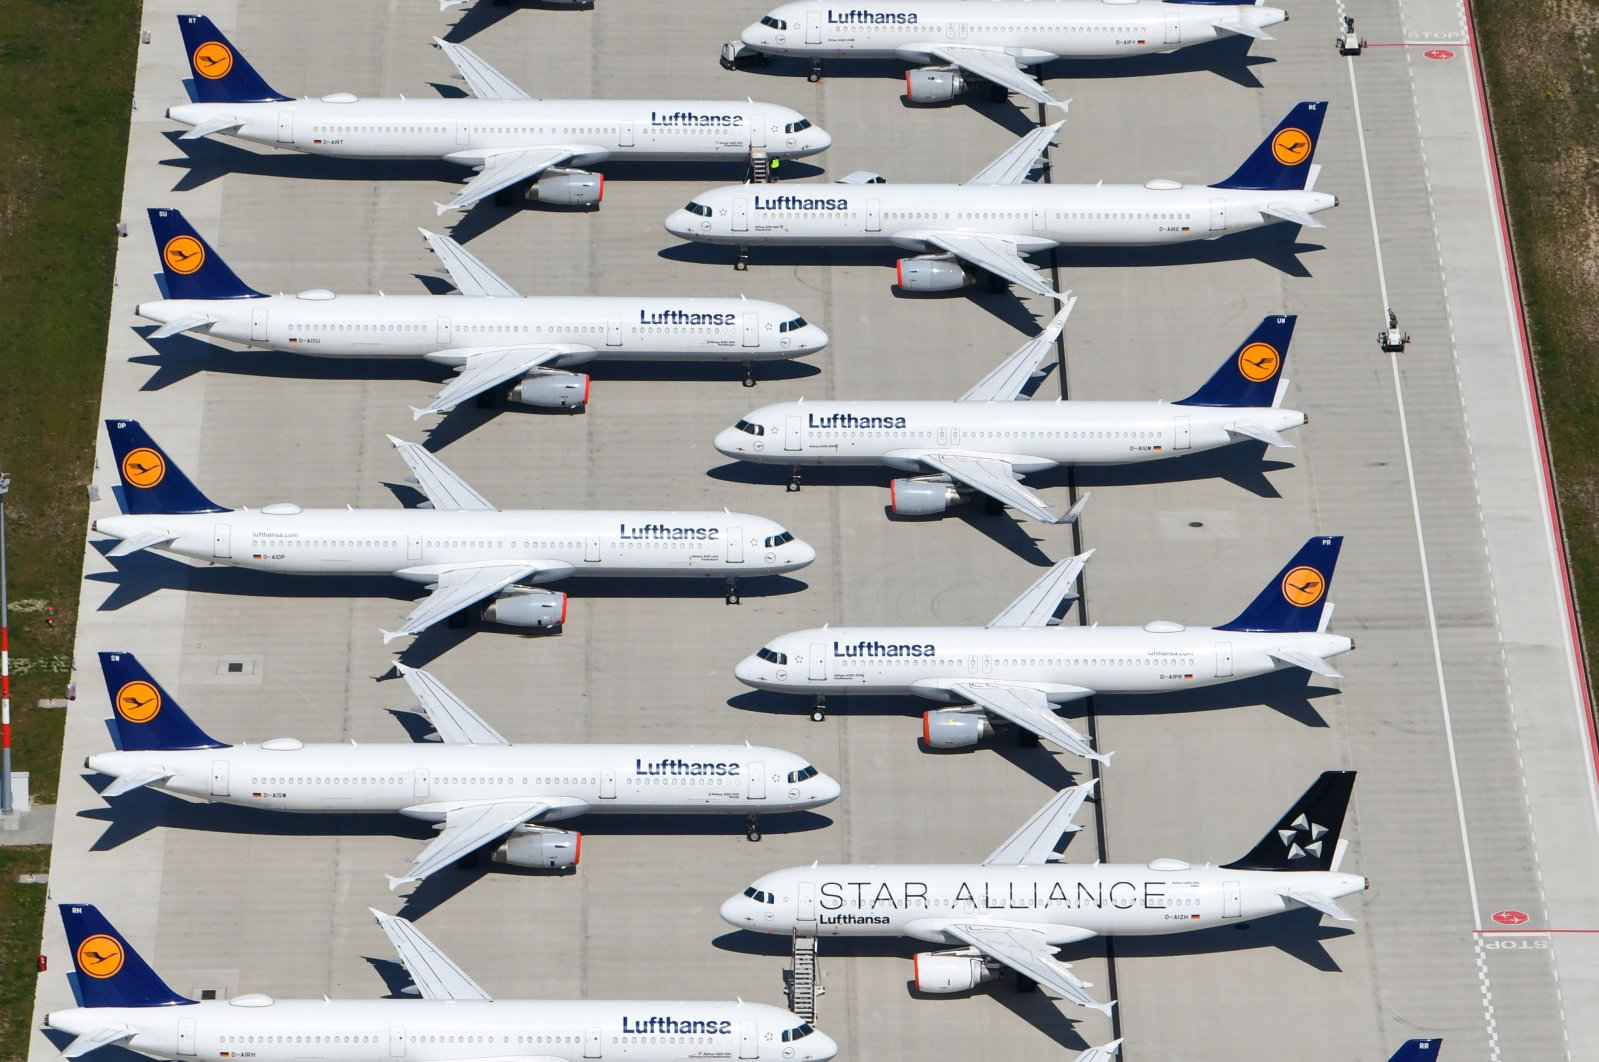 An aerial view shows aircraft of Lufthansa sitting on the tarmac at the Berlin Brandenburg International Airport in Schoenefeld, Germany, April 23, 2020. (EPA Photo)